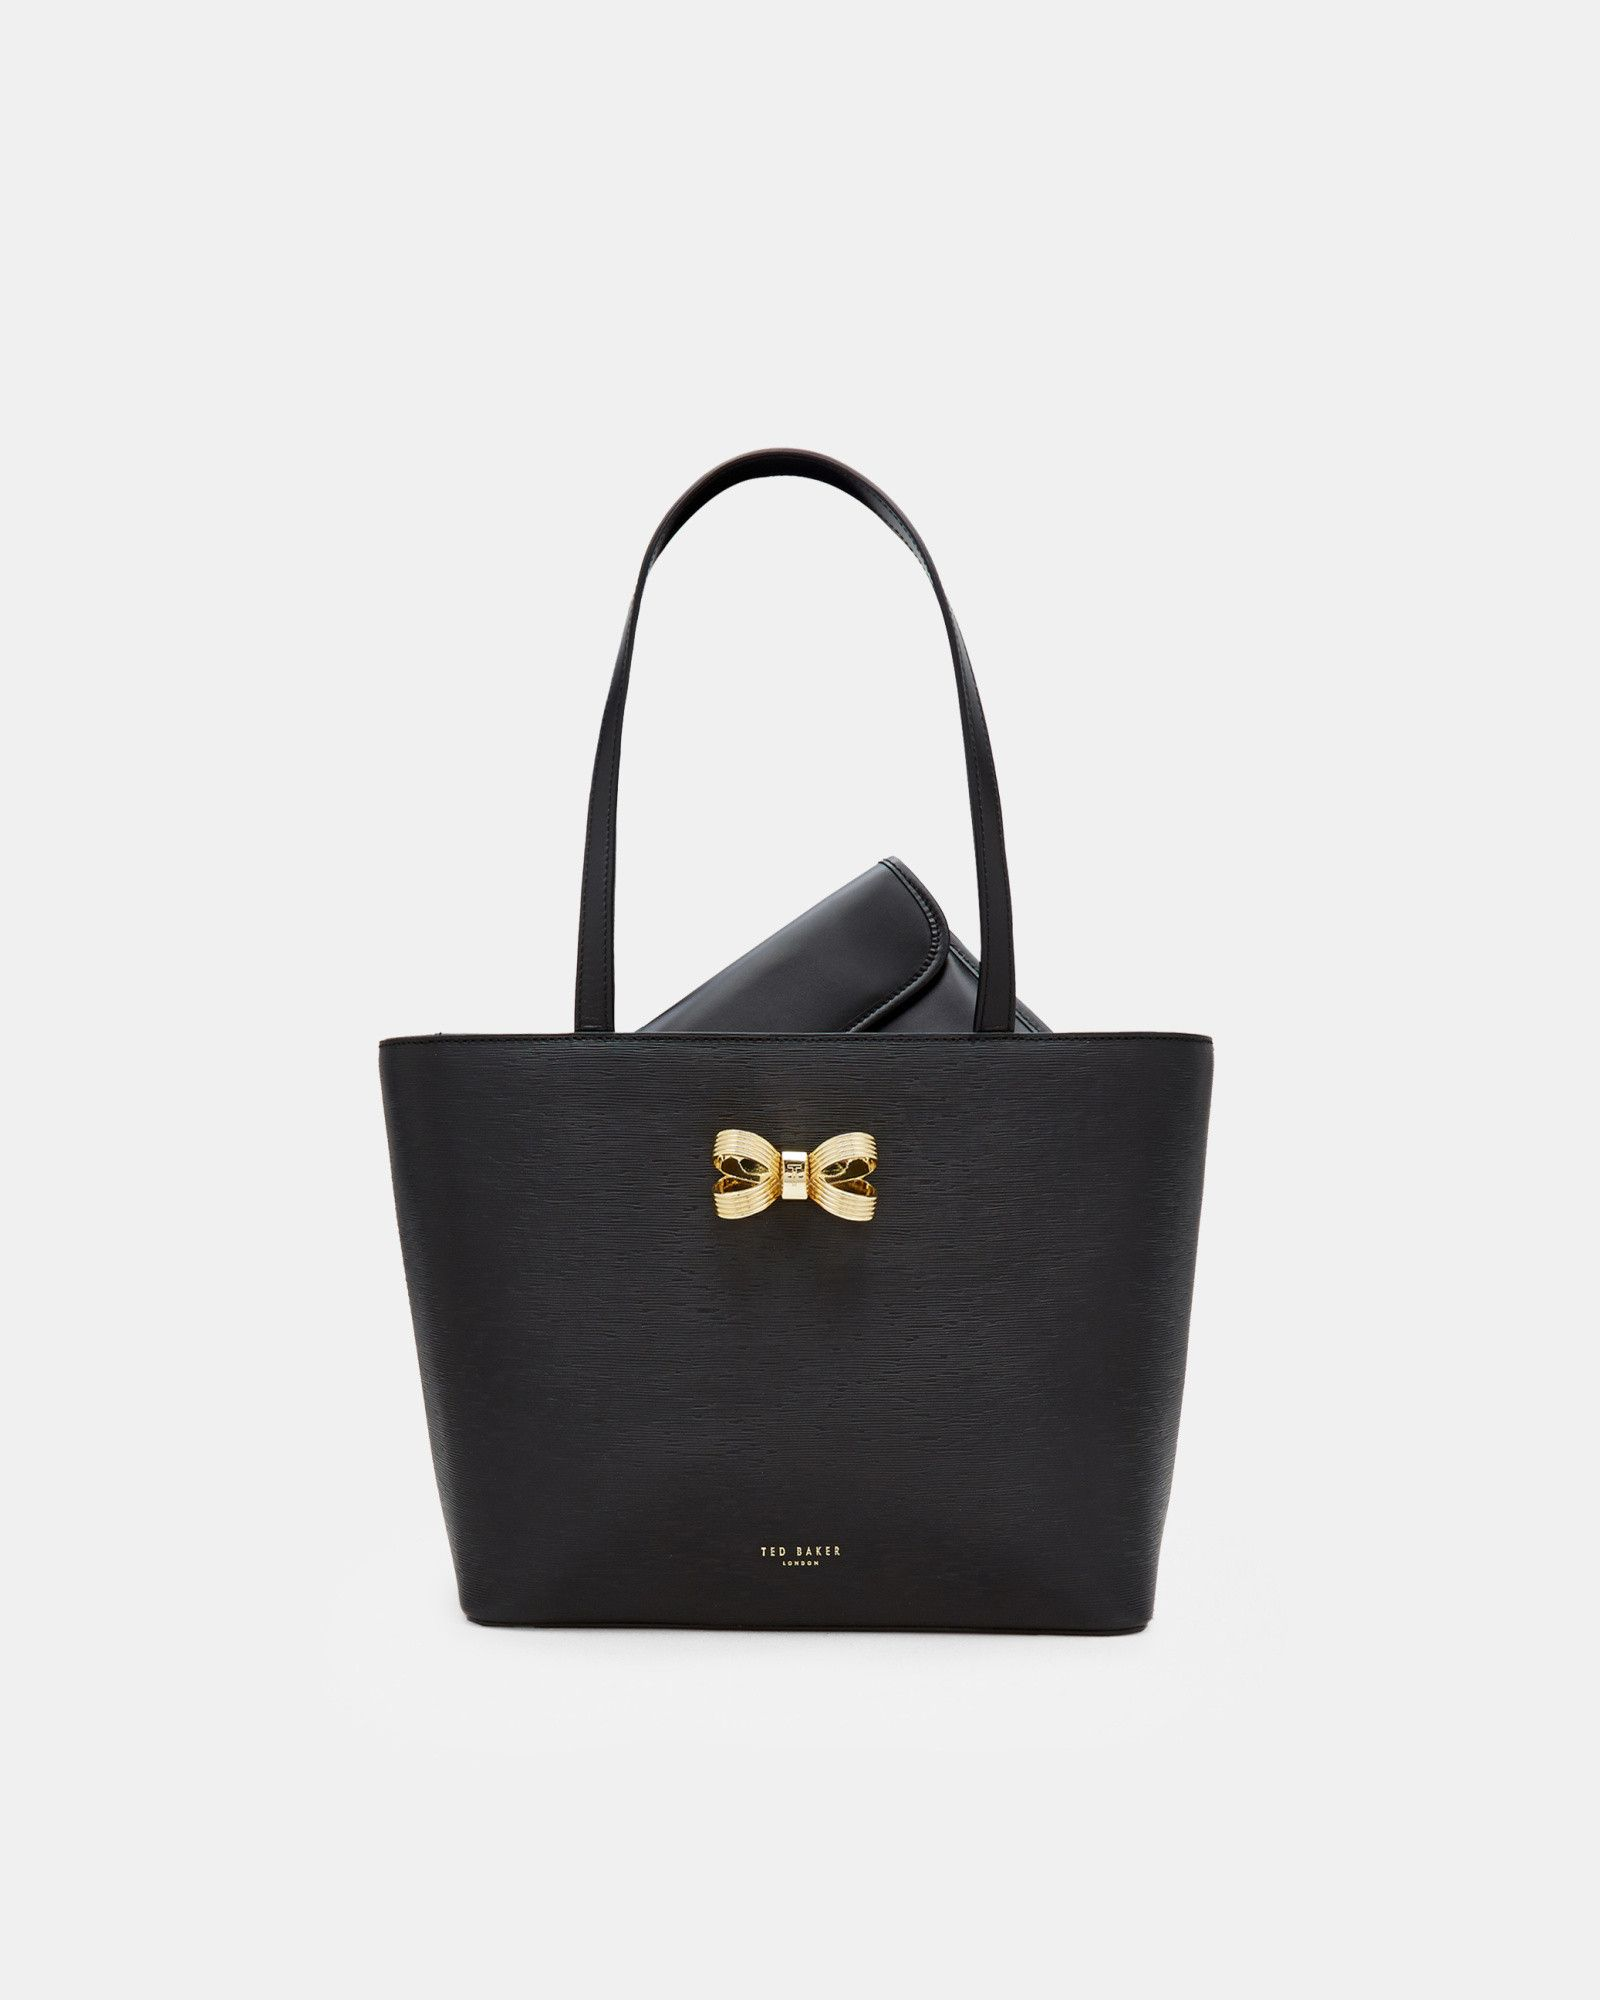 2de6141be6b Ted Baker Loop bow small leather shopper bag Black | Products in ...